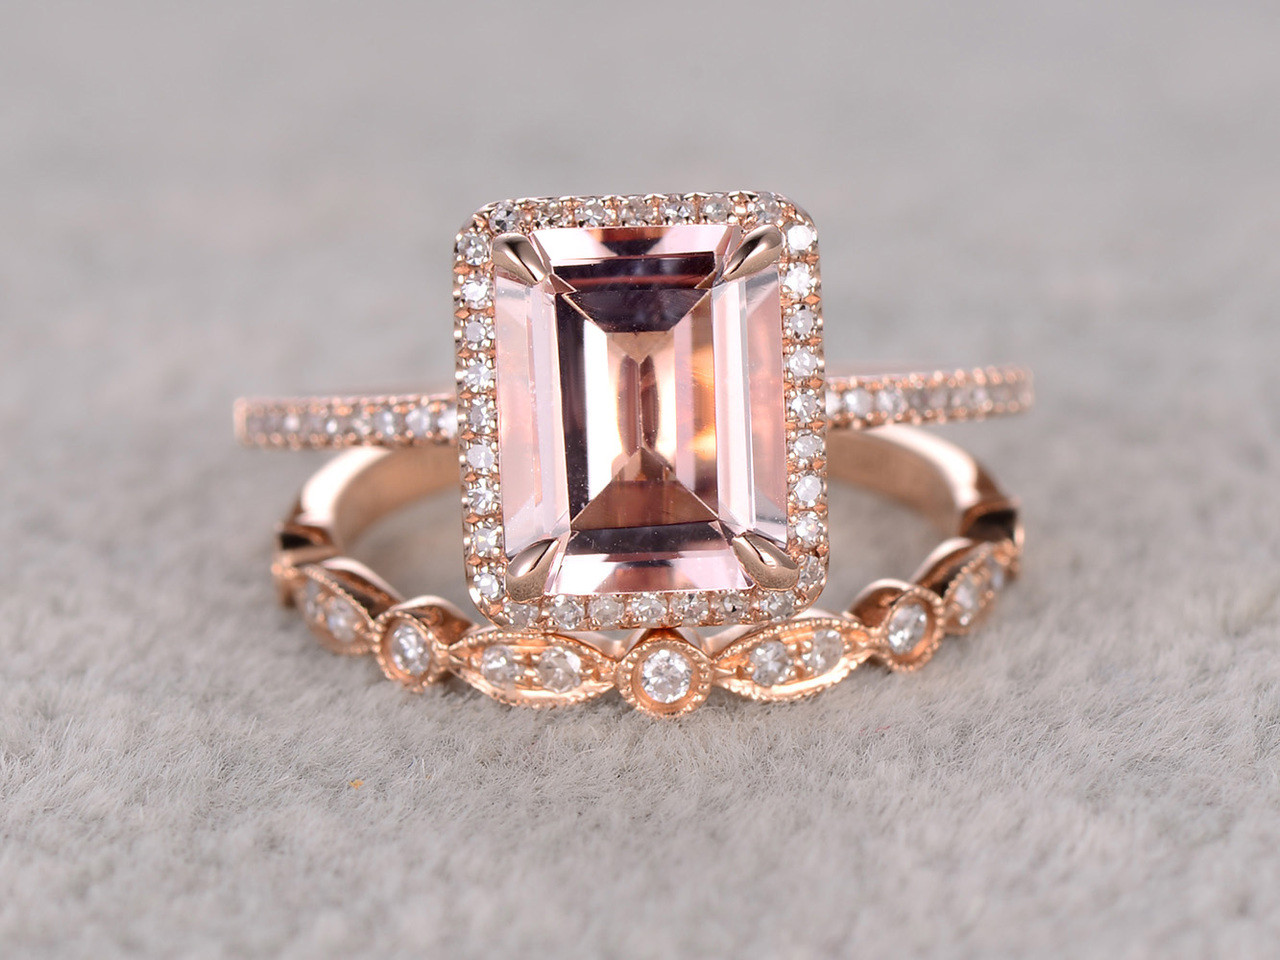 25 to 3 Carat Emerald Cut Morganite Engagement Ring Set Diamond